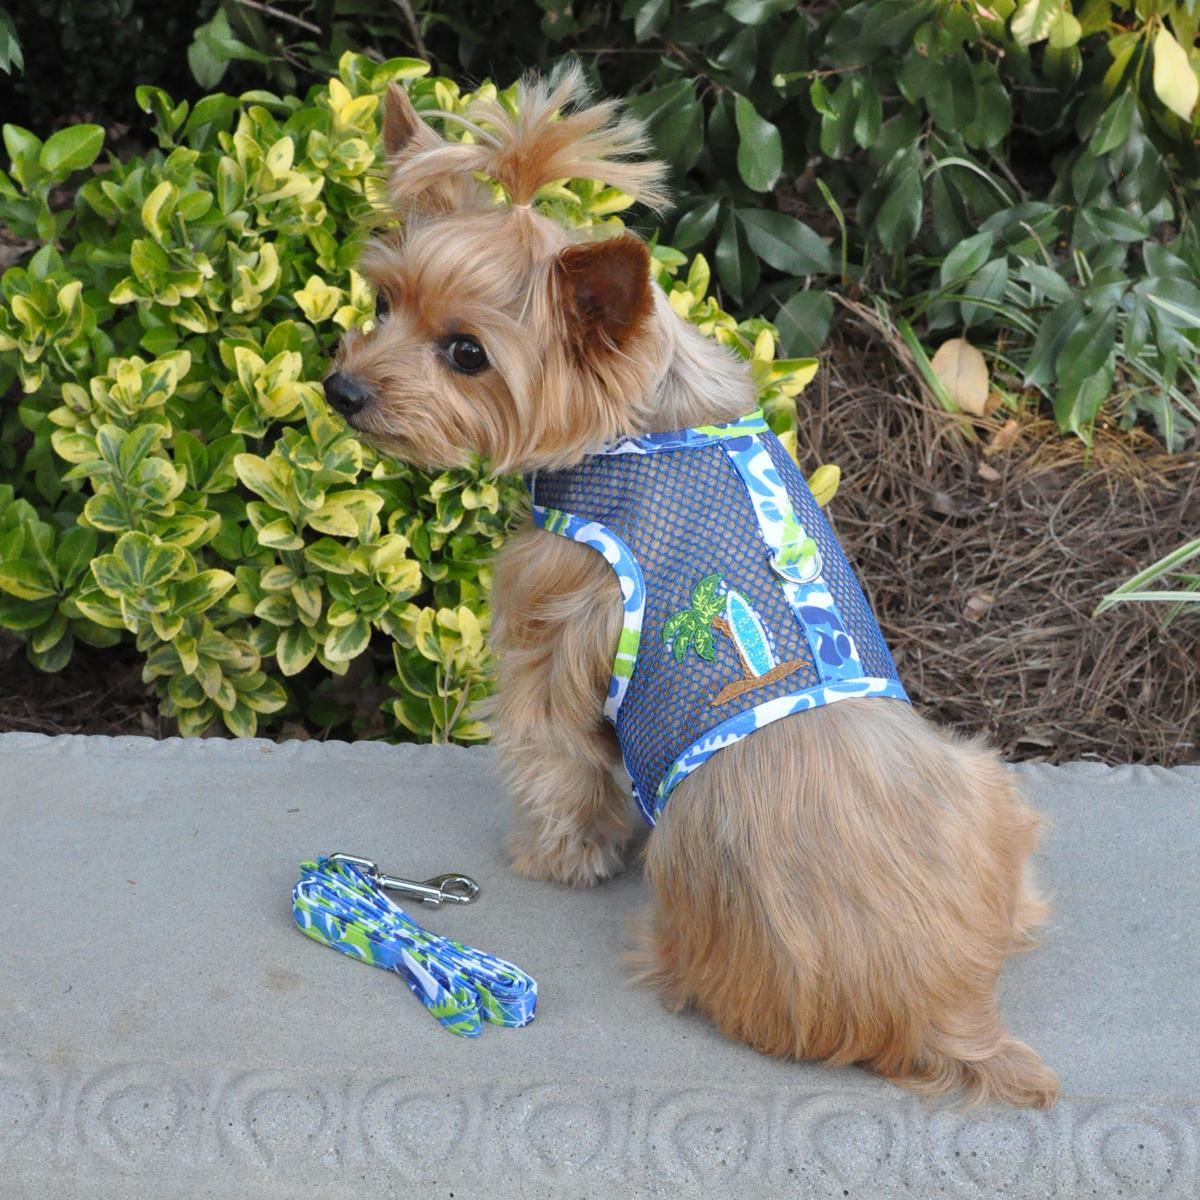 Surfboard Blue and Green Cool Mesh Dog Harness with Matching Leash by Doggie Design